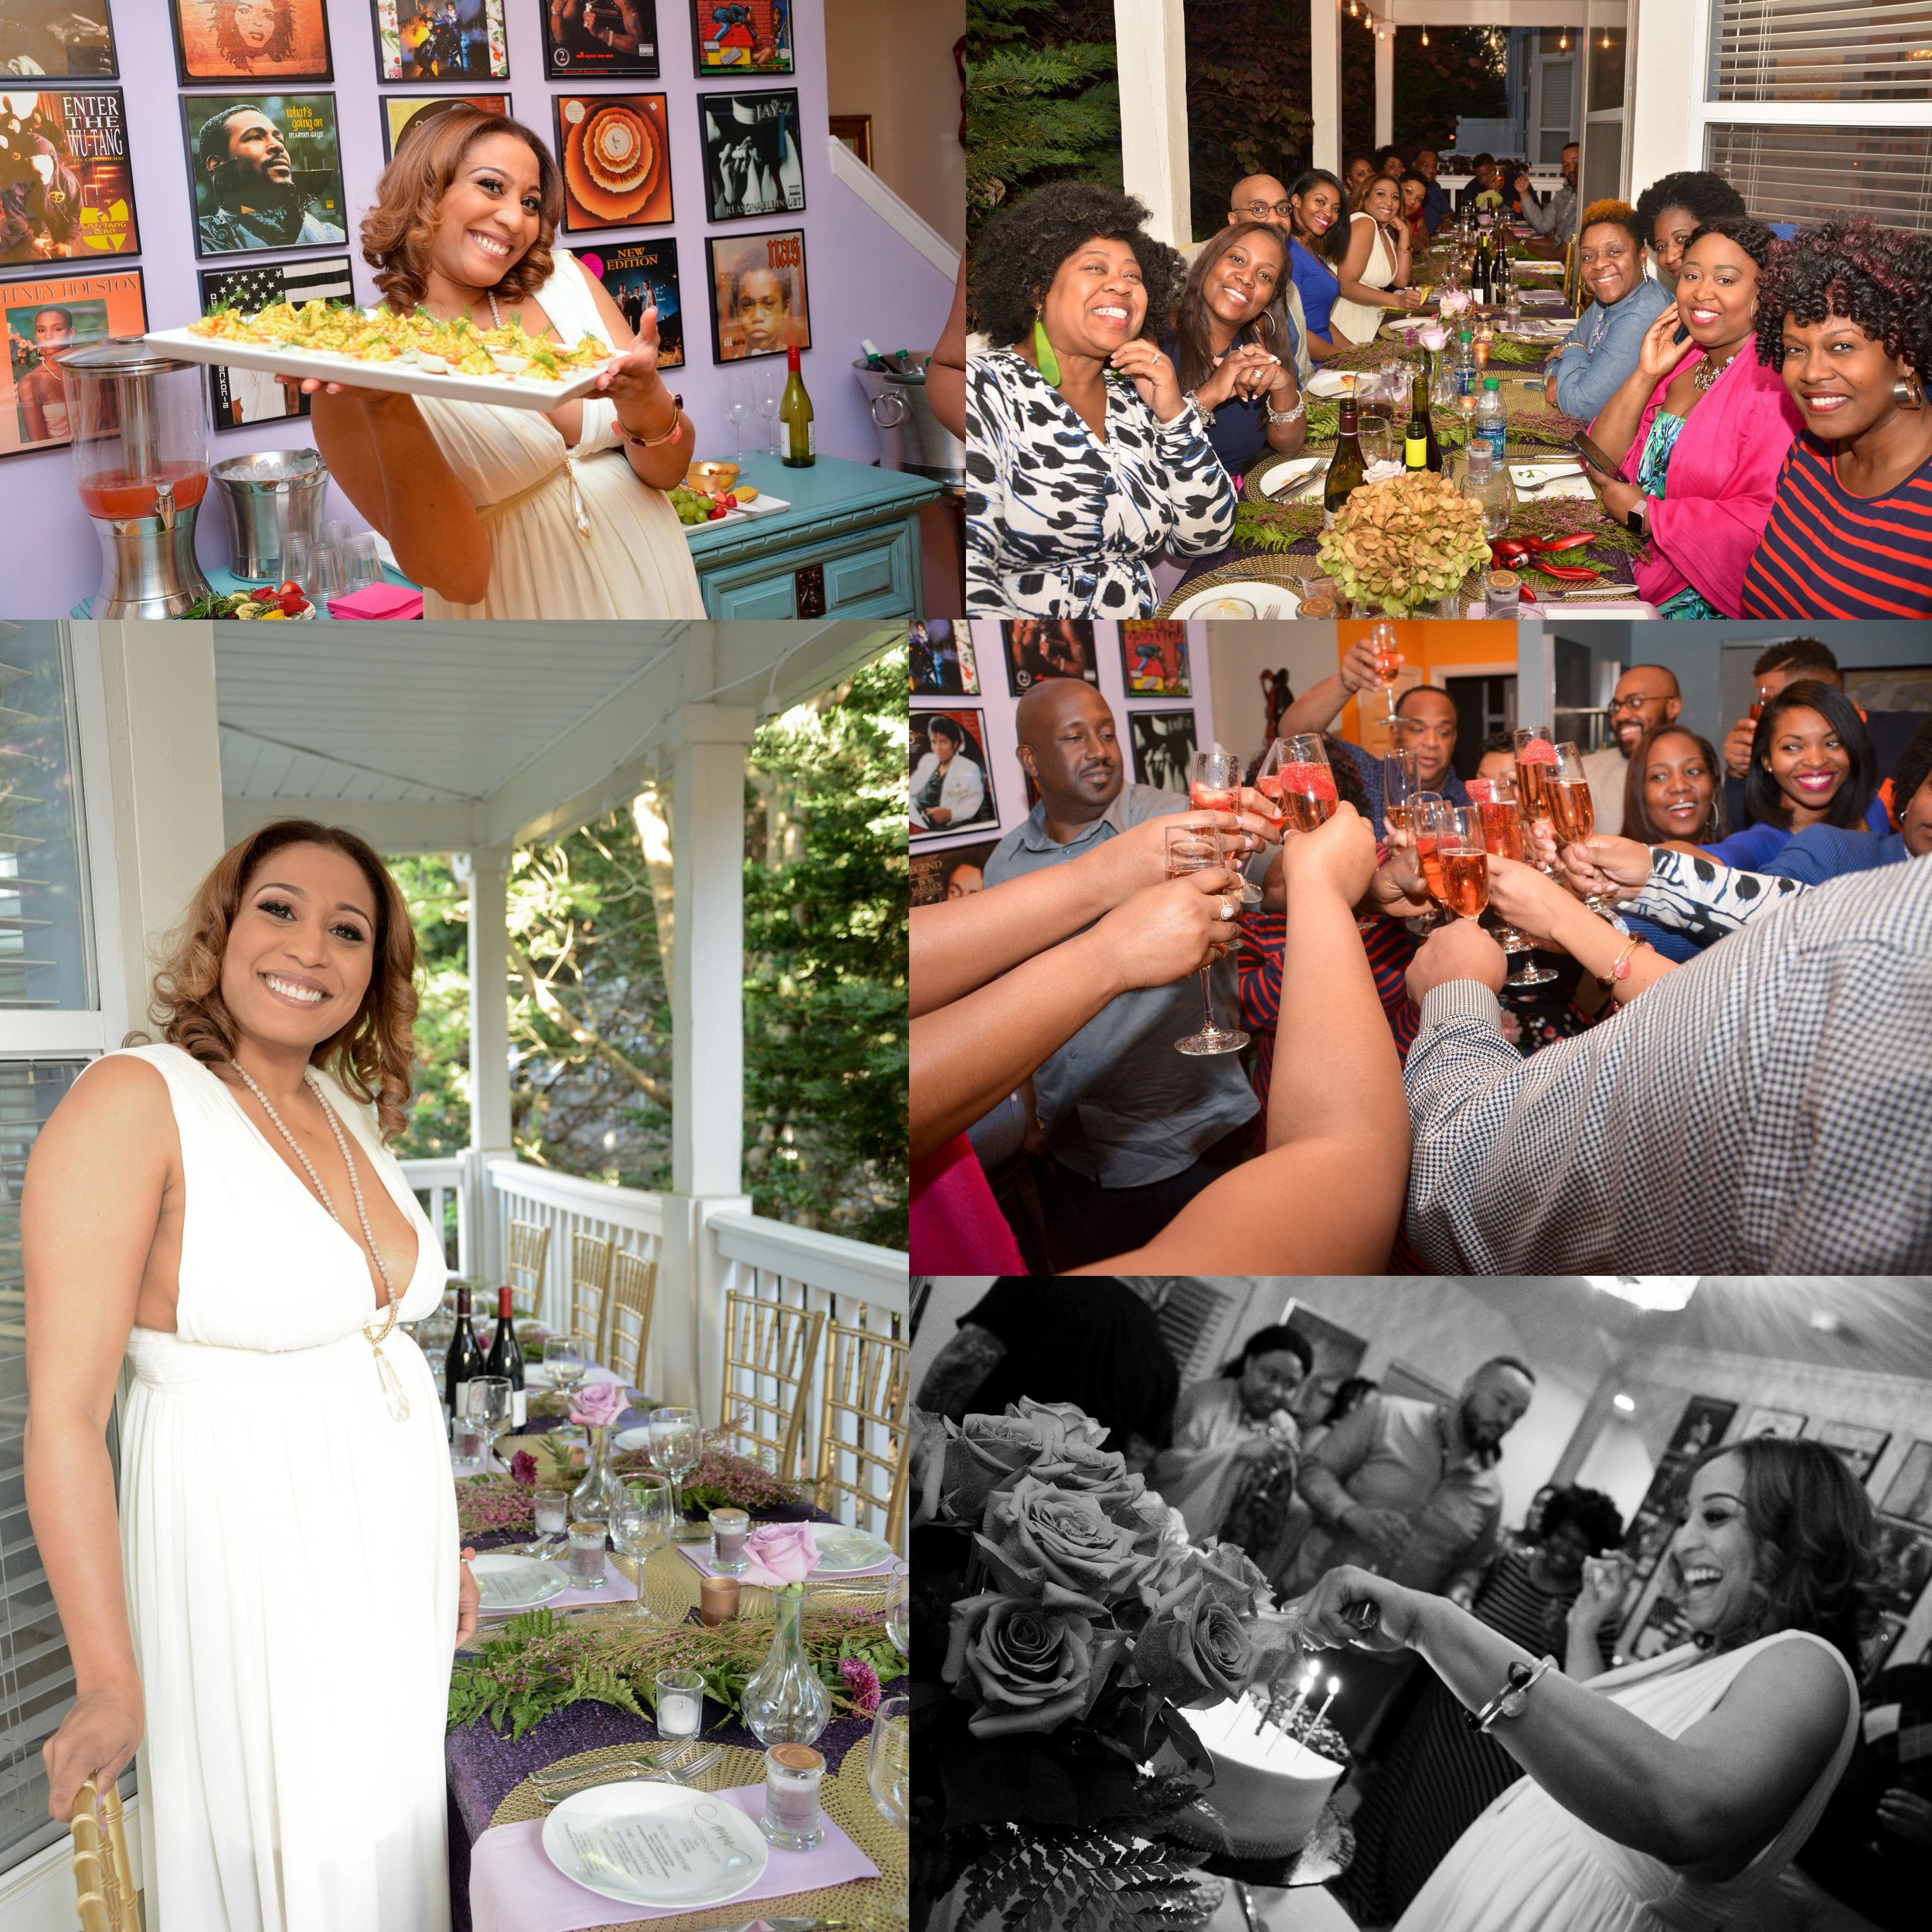 Ronda's 40th Birthday Dinner Party with Friends- April 2018